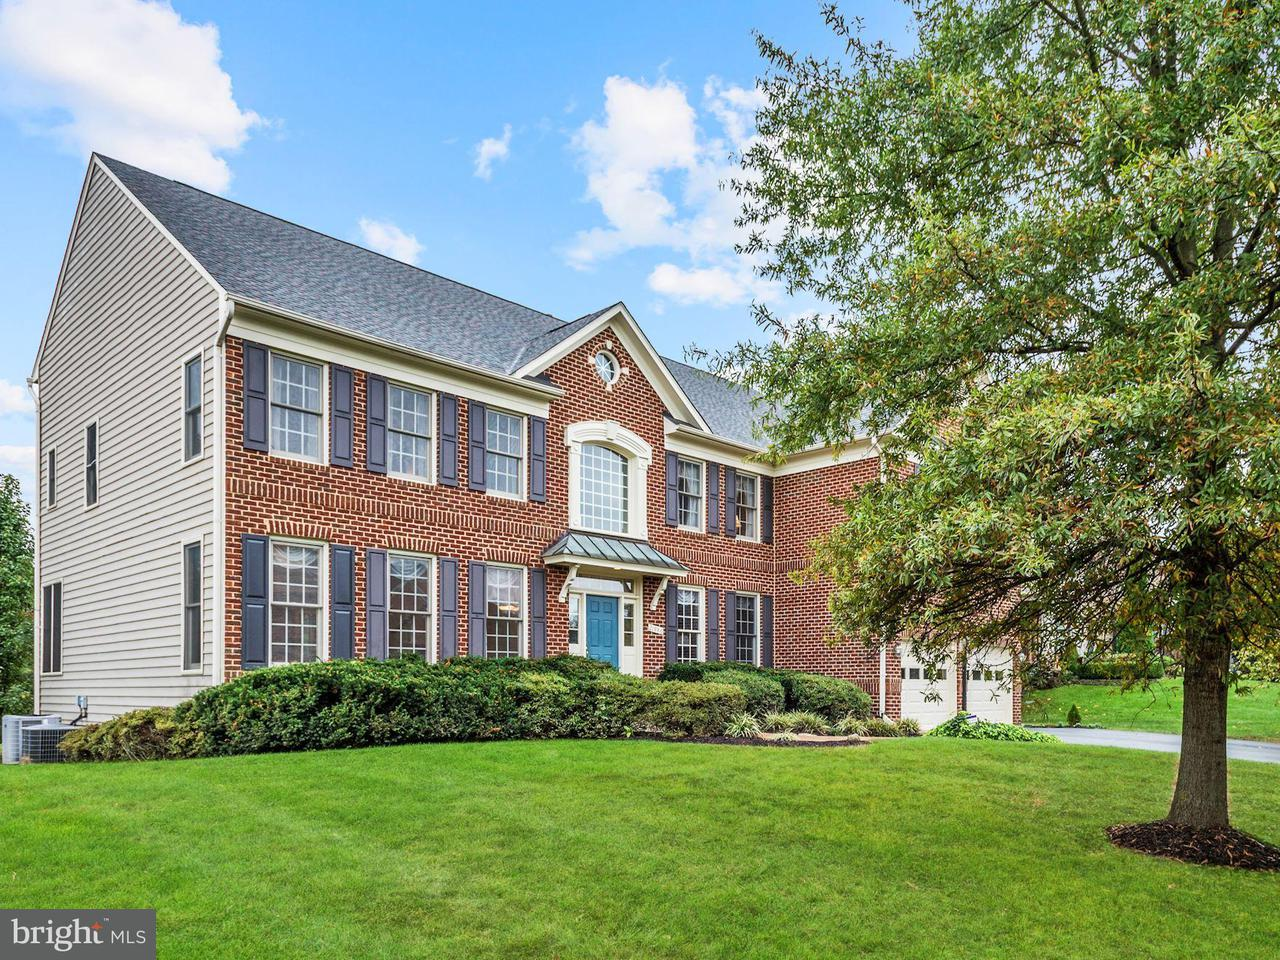 Single Family Home for Sale at 21986 HYDE PARK Drive 21986 HYDE PARK Drive Ashburn, Virginia 20147 United States